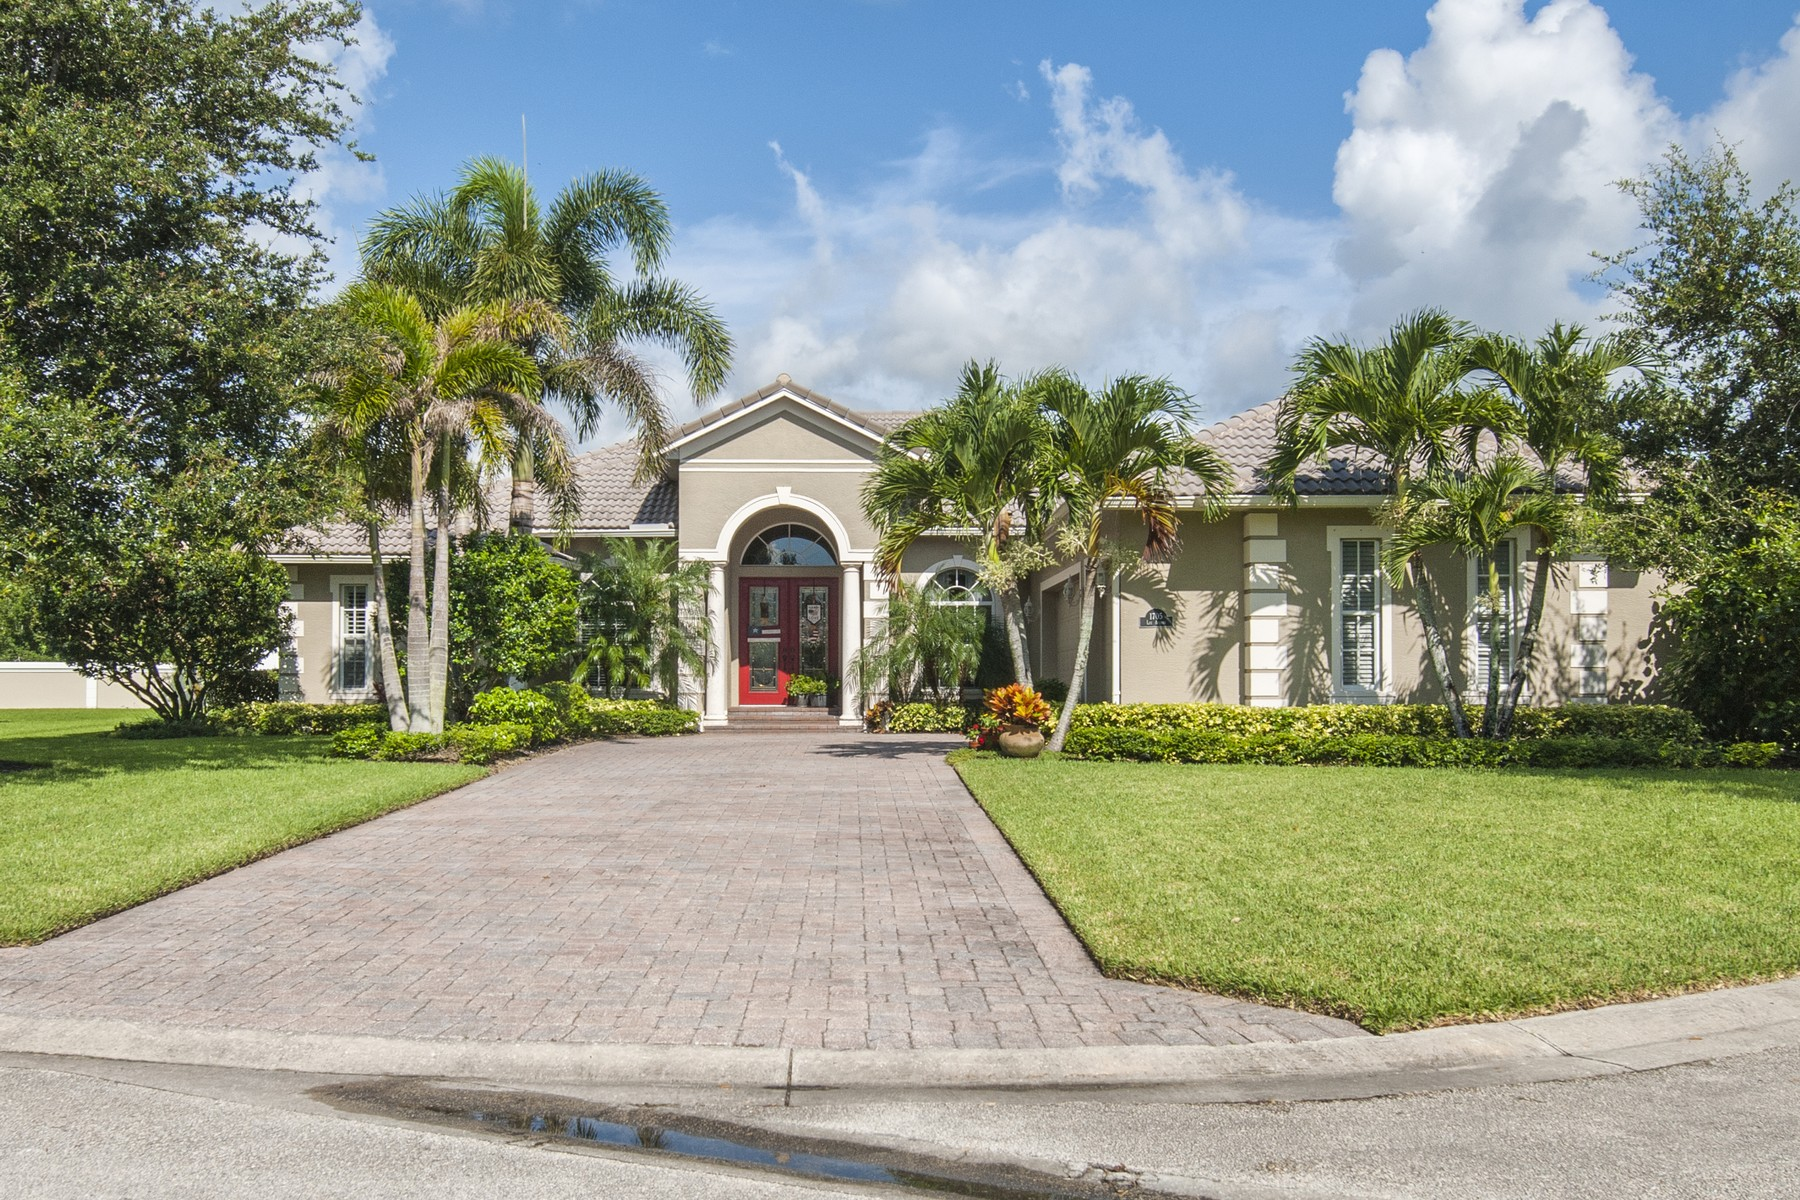 Immaculate and Grand Pool Home on Doctors Row 1705 Lee Avenue Vero Beach, Florida 32966 Estados Unidos